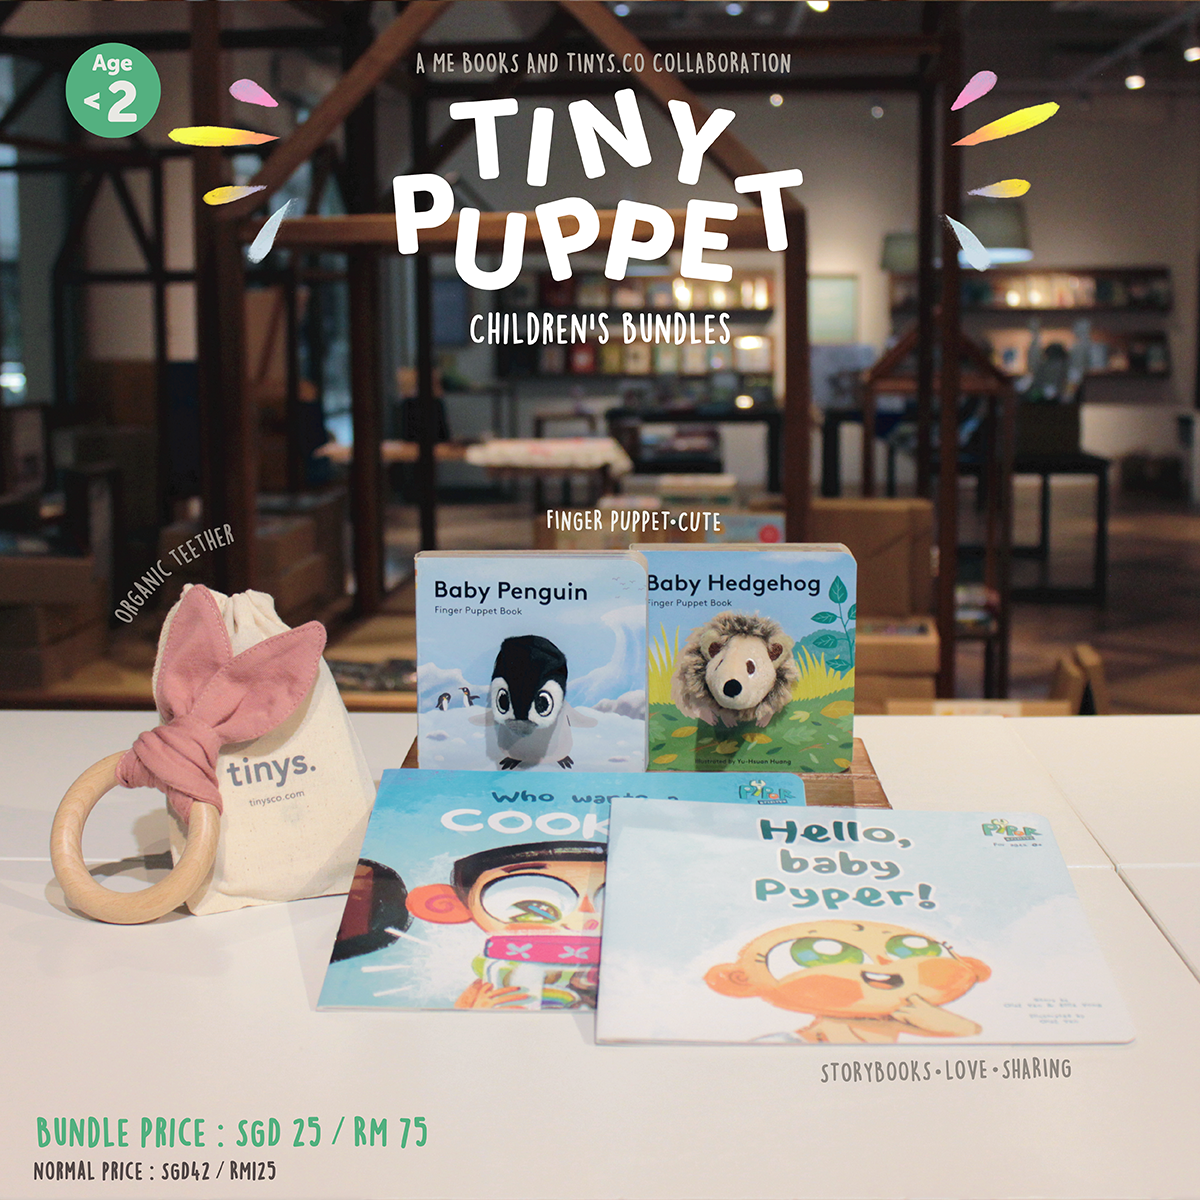 Tiny Puppet Children's Bundle